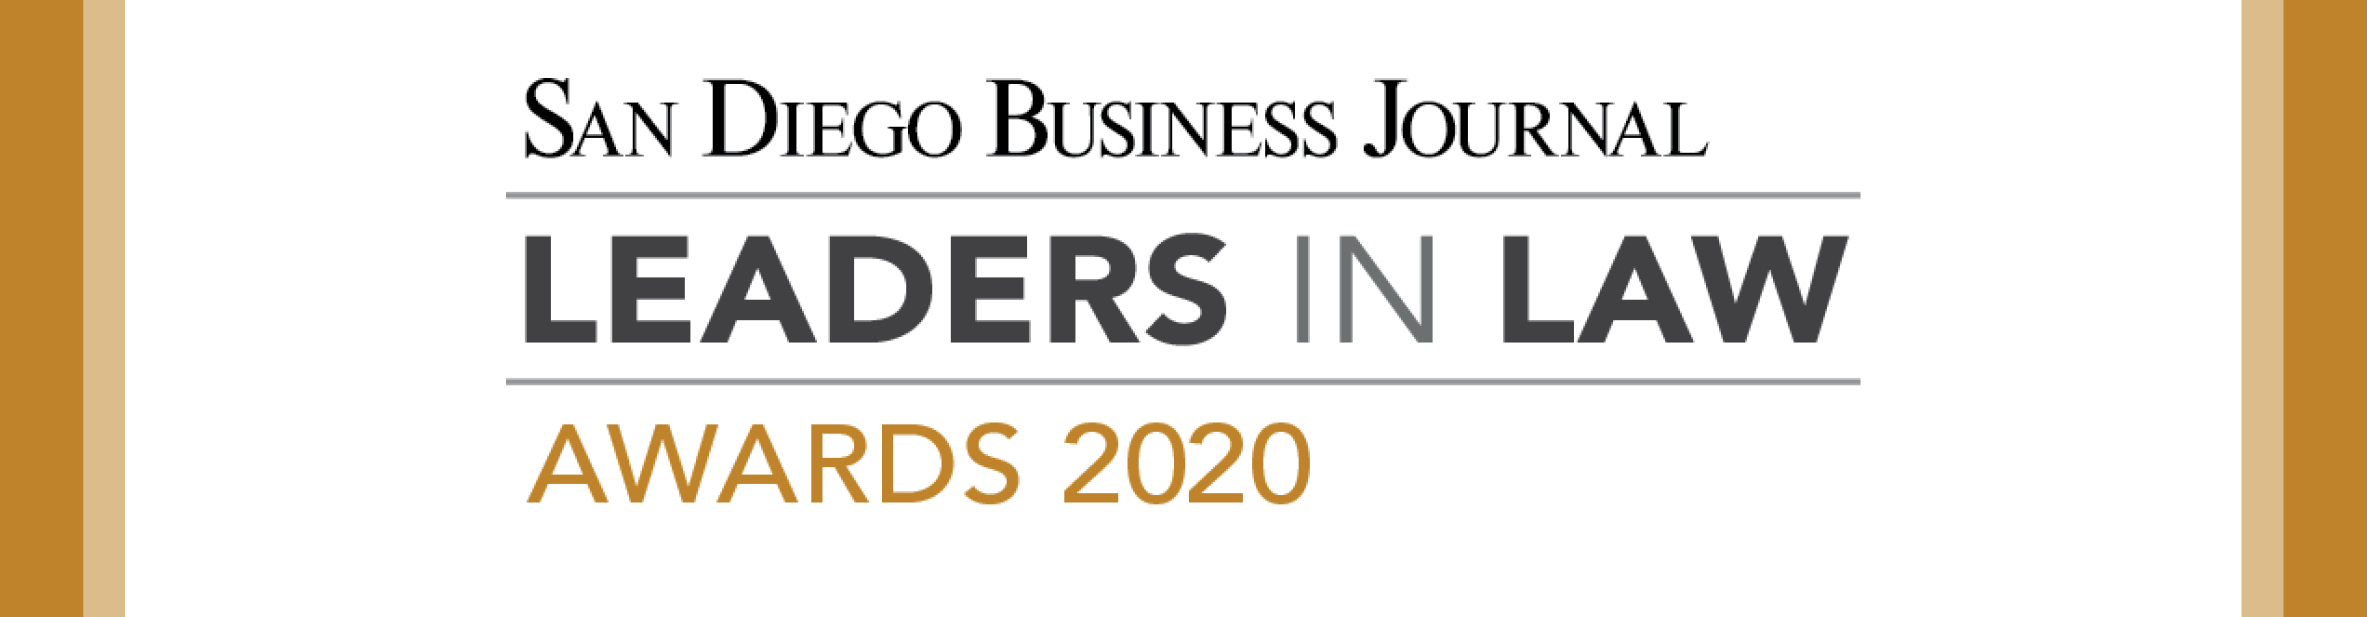 San Diego Business Journal Leaders in Law